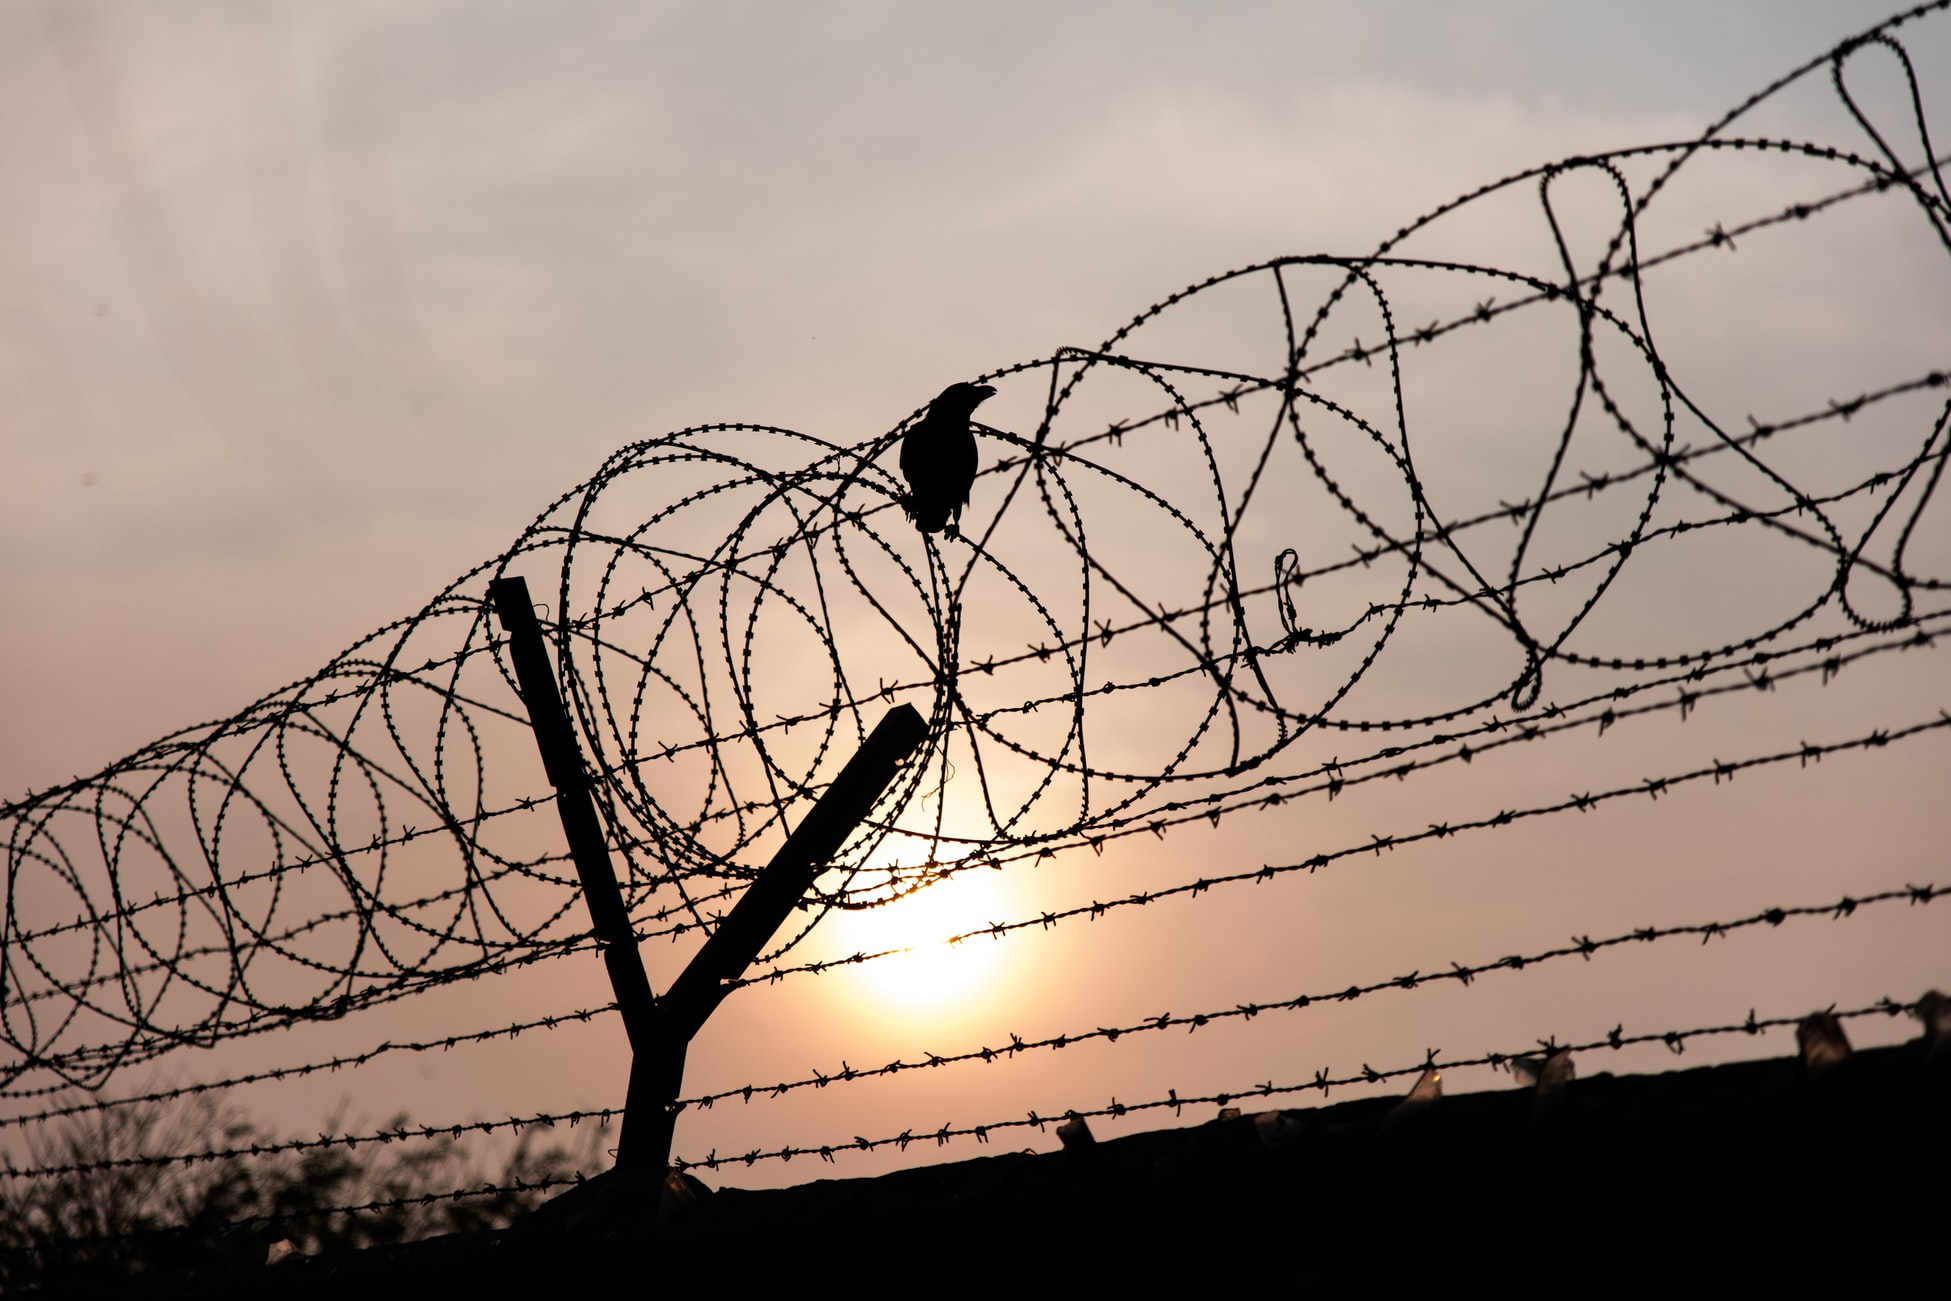 fence with barbed wire at top